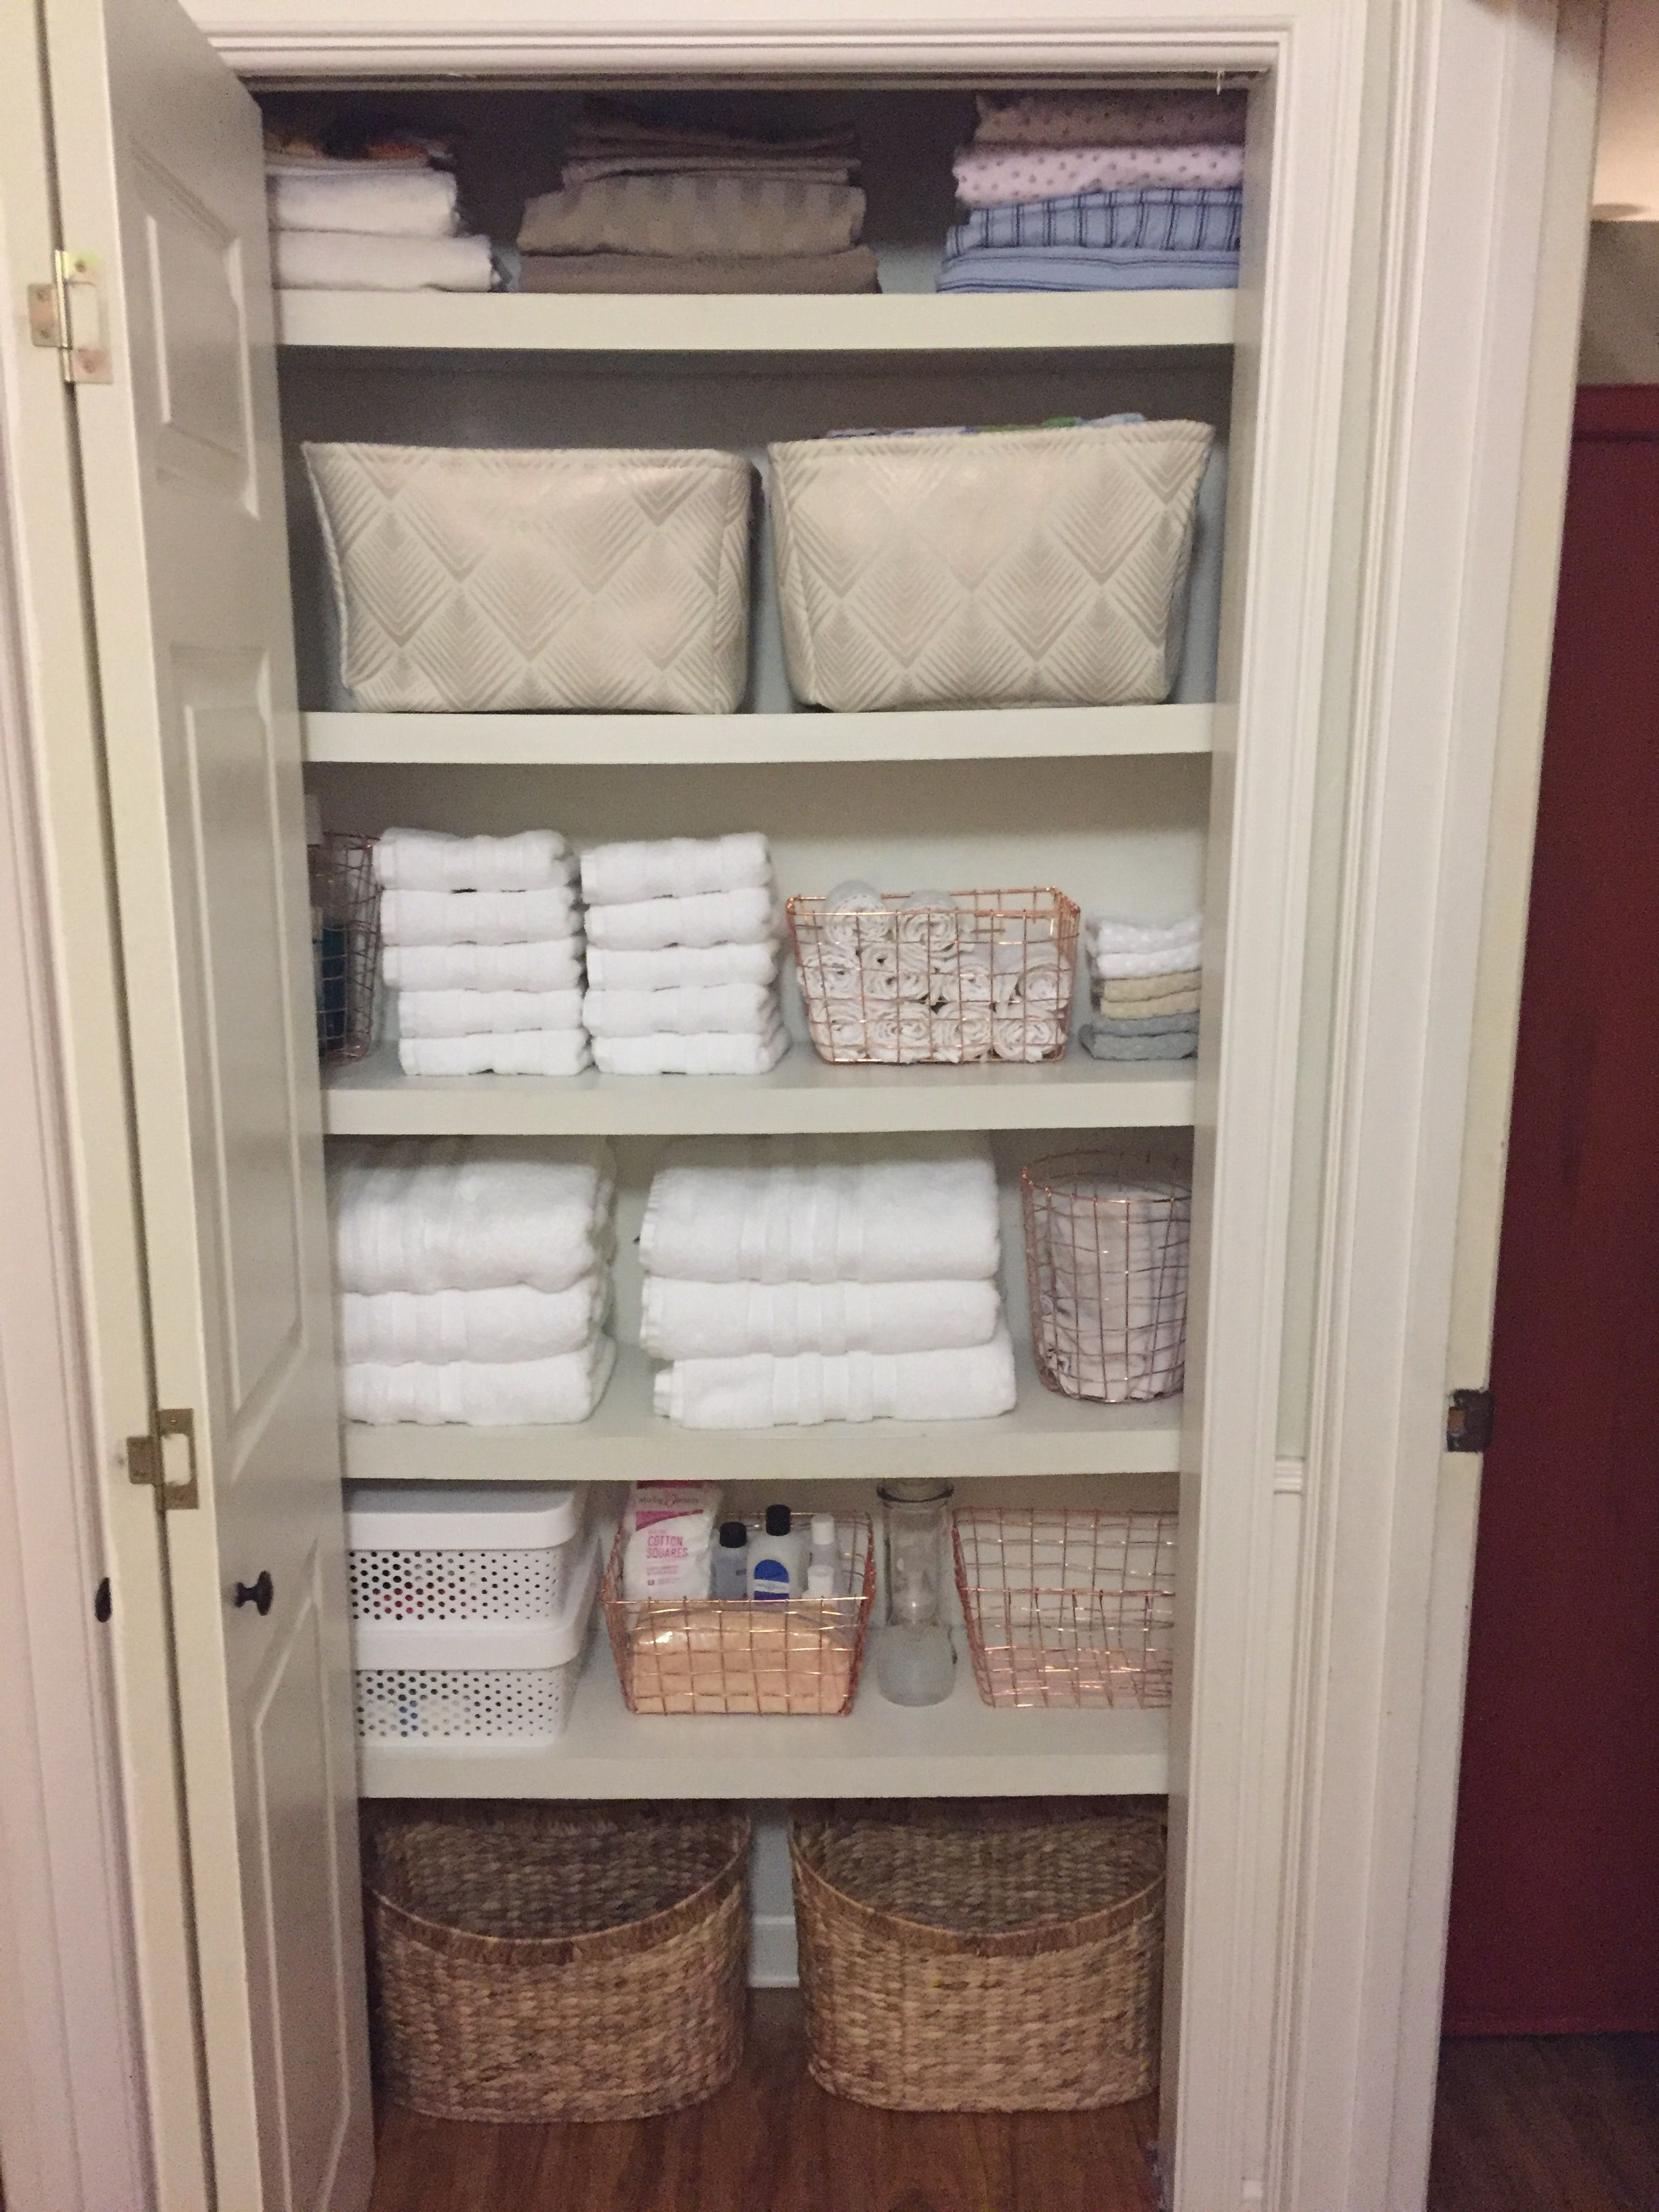 Pin By Kem Mcguire On Organize Me In 2020 Linen Closet